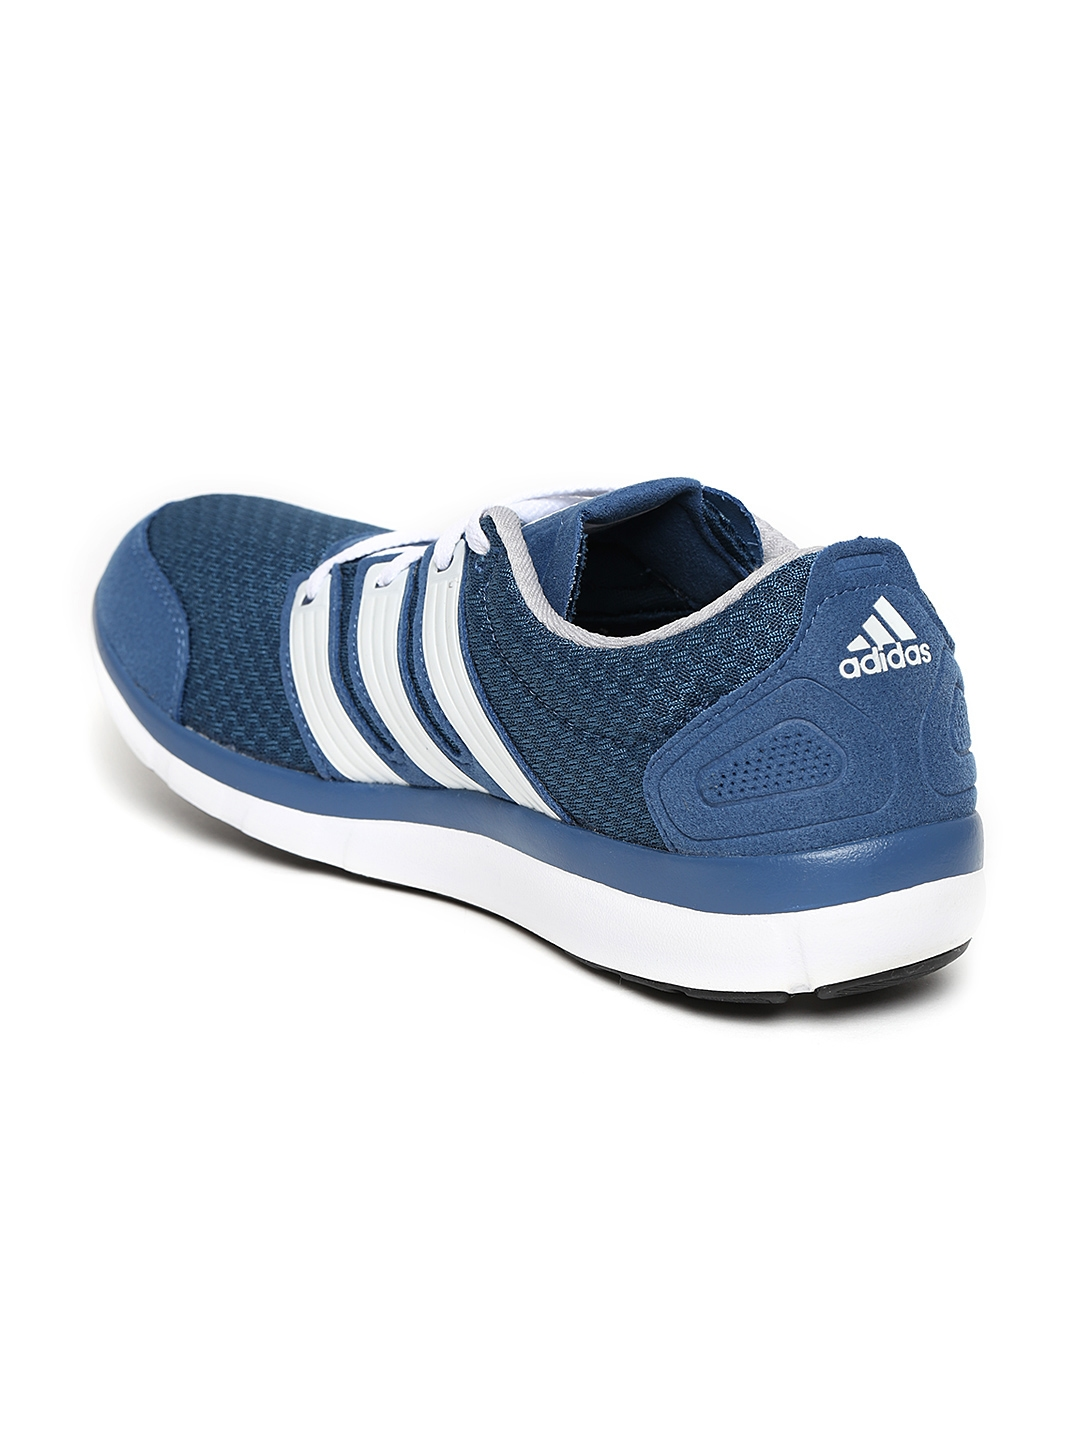 size 40 4bf24 48c04 image. MORE COLOURS. ADIDAS